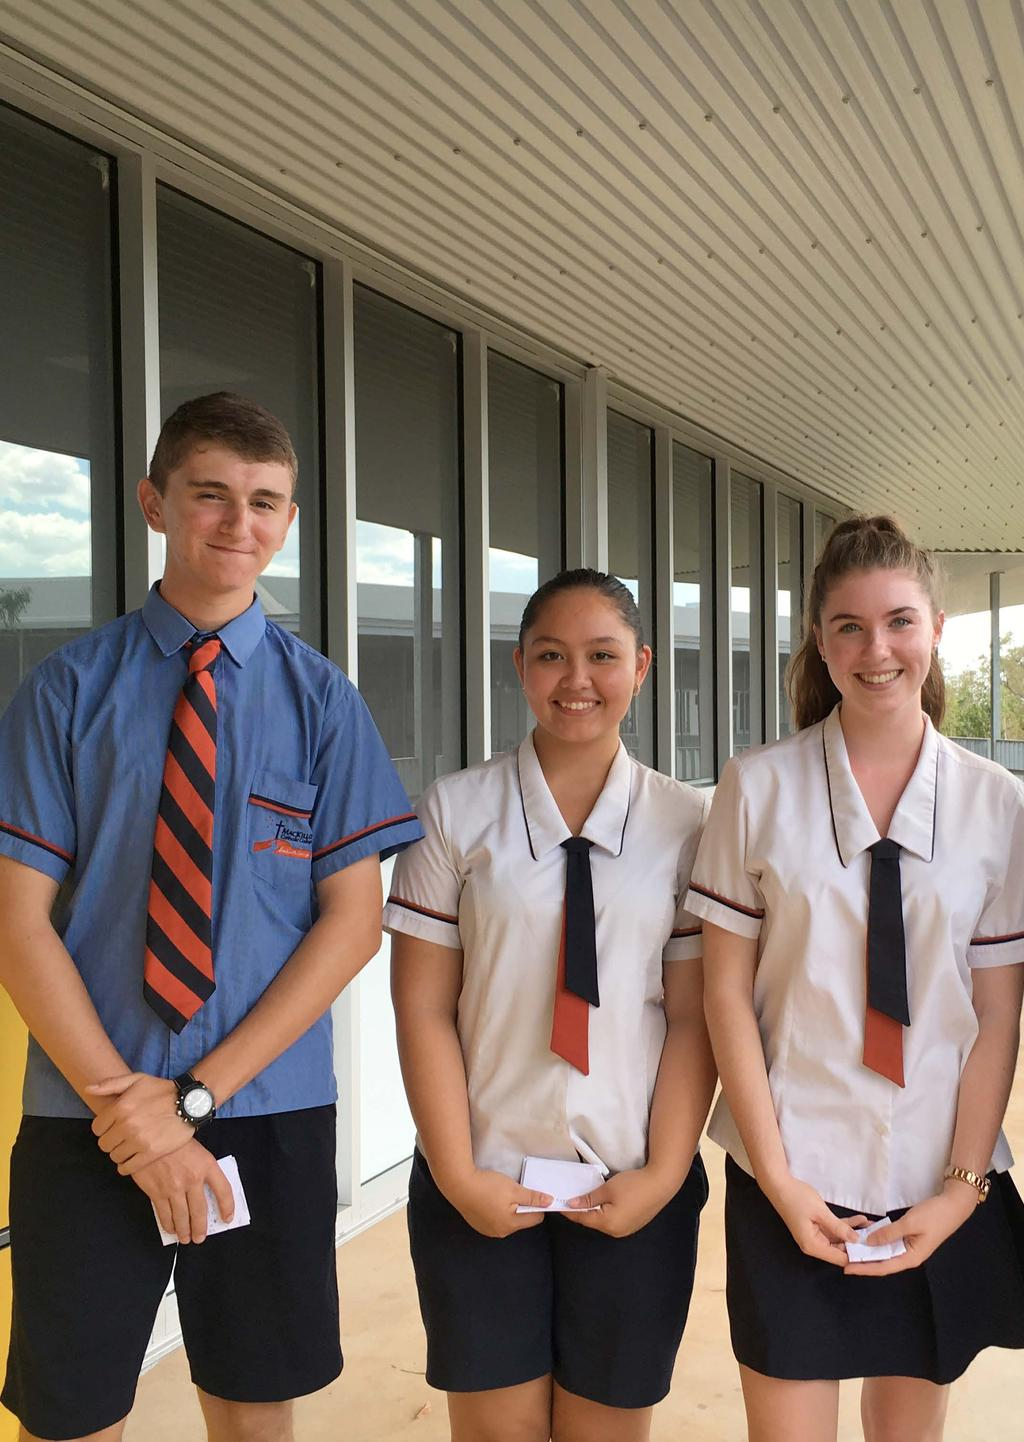 Our Uniform Students at MacKillop Catholic College wear a uniform to connect them to their school community.